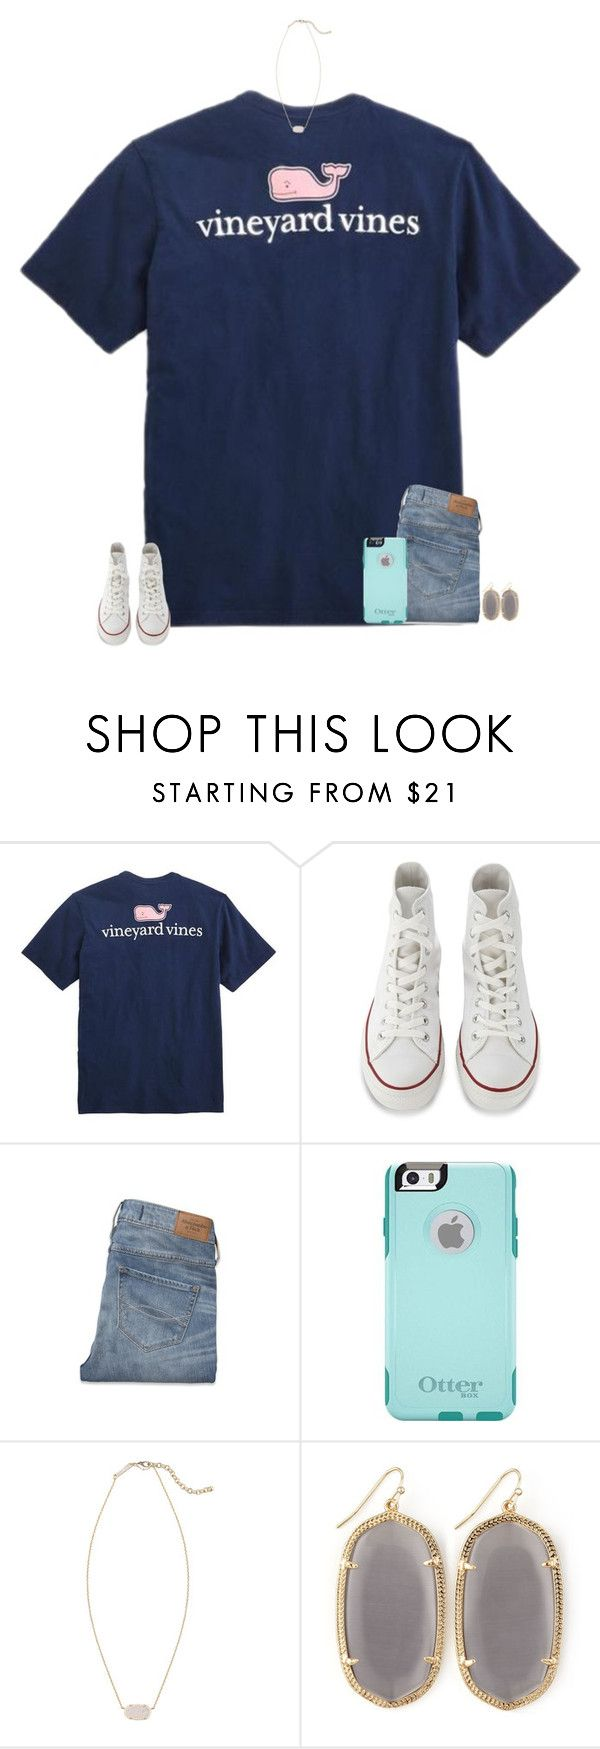 """TAYLORS NEW VIDEO IN 3 MINUTES"" by secfashion13 ❤ liked on Polyvore featuring Vineyard Vines, Converse, Abercrombie & Fitch, OtterBox and Kendra Scott"